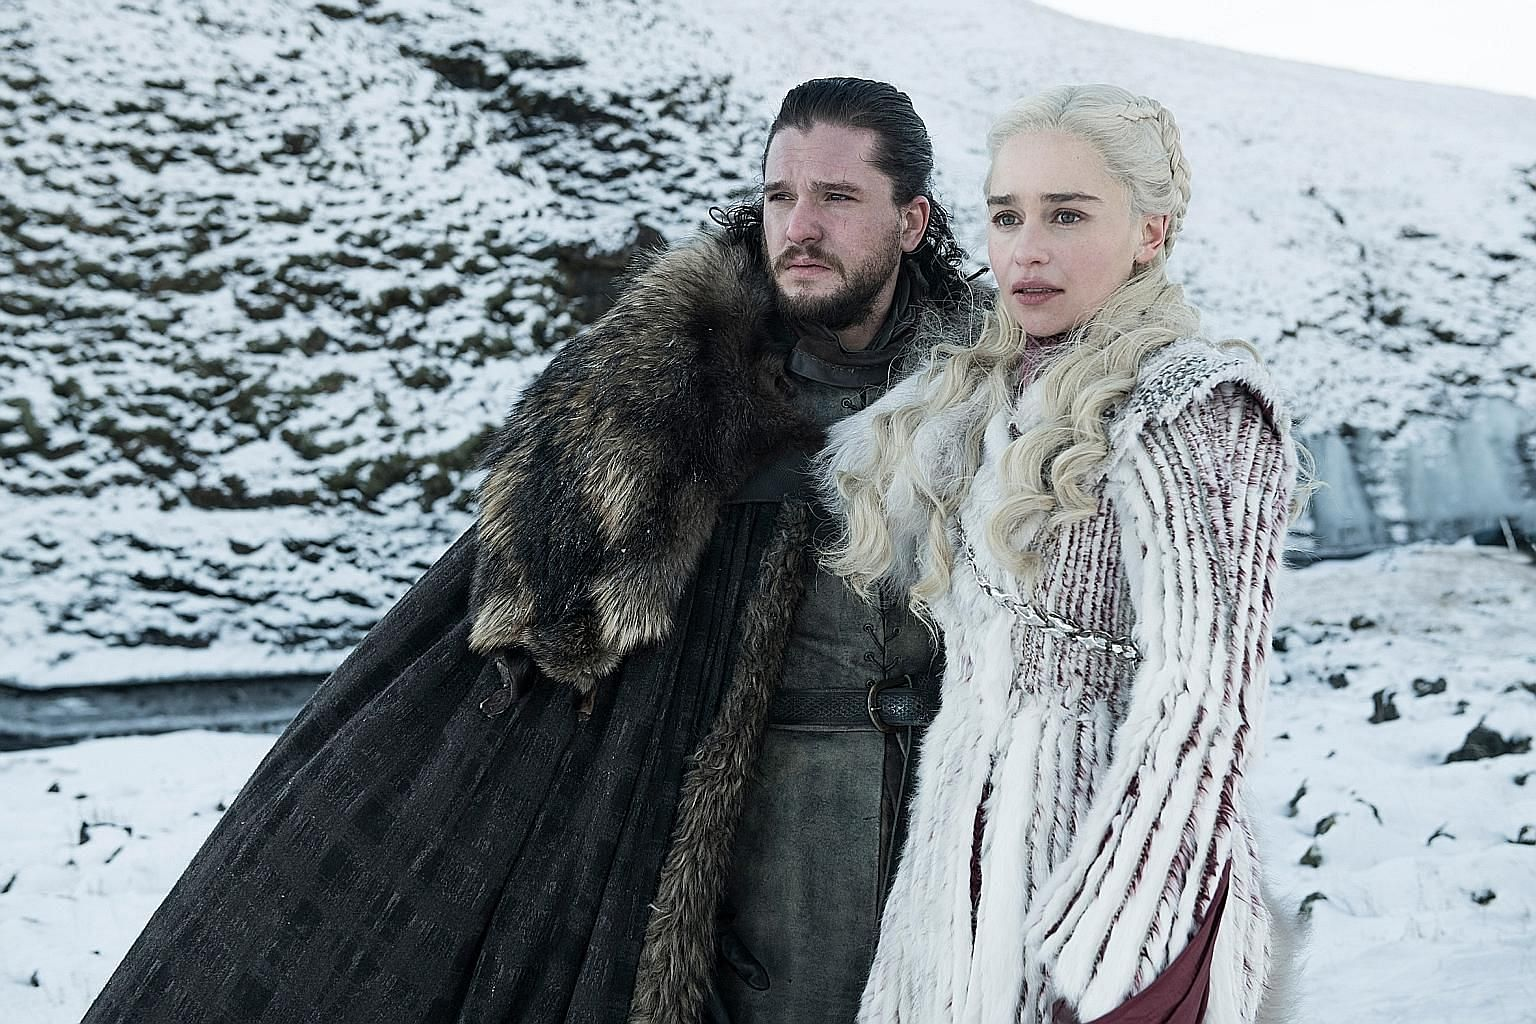 Actors Kit Harington and Emilia Clarke in the popular fantasy TV series Game Of Thrones. Tech giants are spending millions of dollars to create what they hope will be the next global hit, with many fantasy epics now in production.